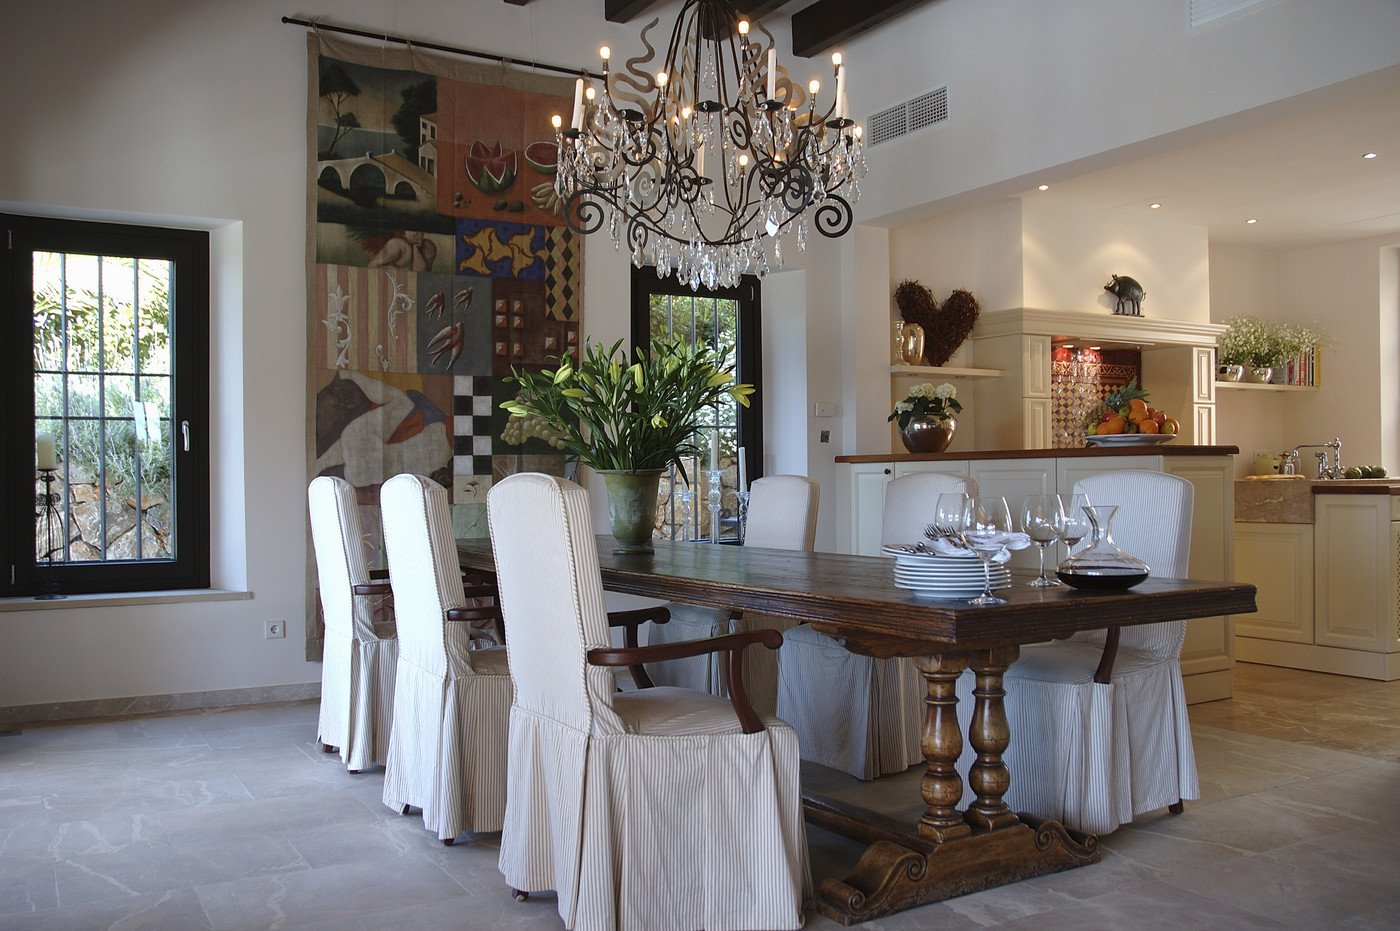 Decor Ideas for Dining Rooms New White Country Dining Room Dining Room Decorating Ideas Lonny